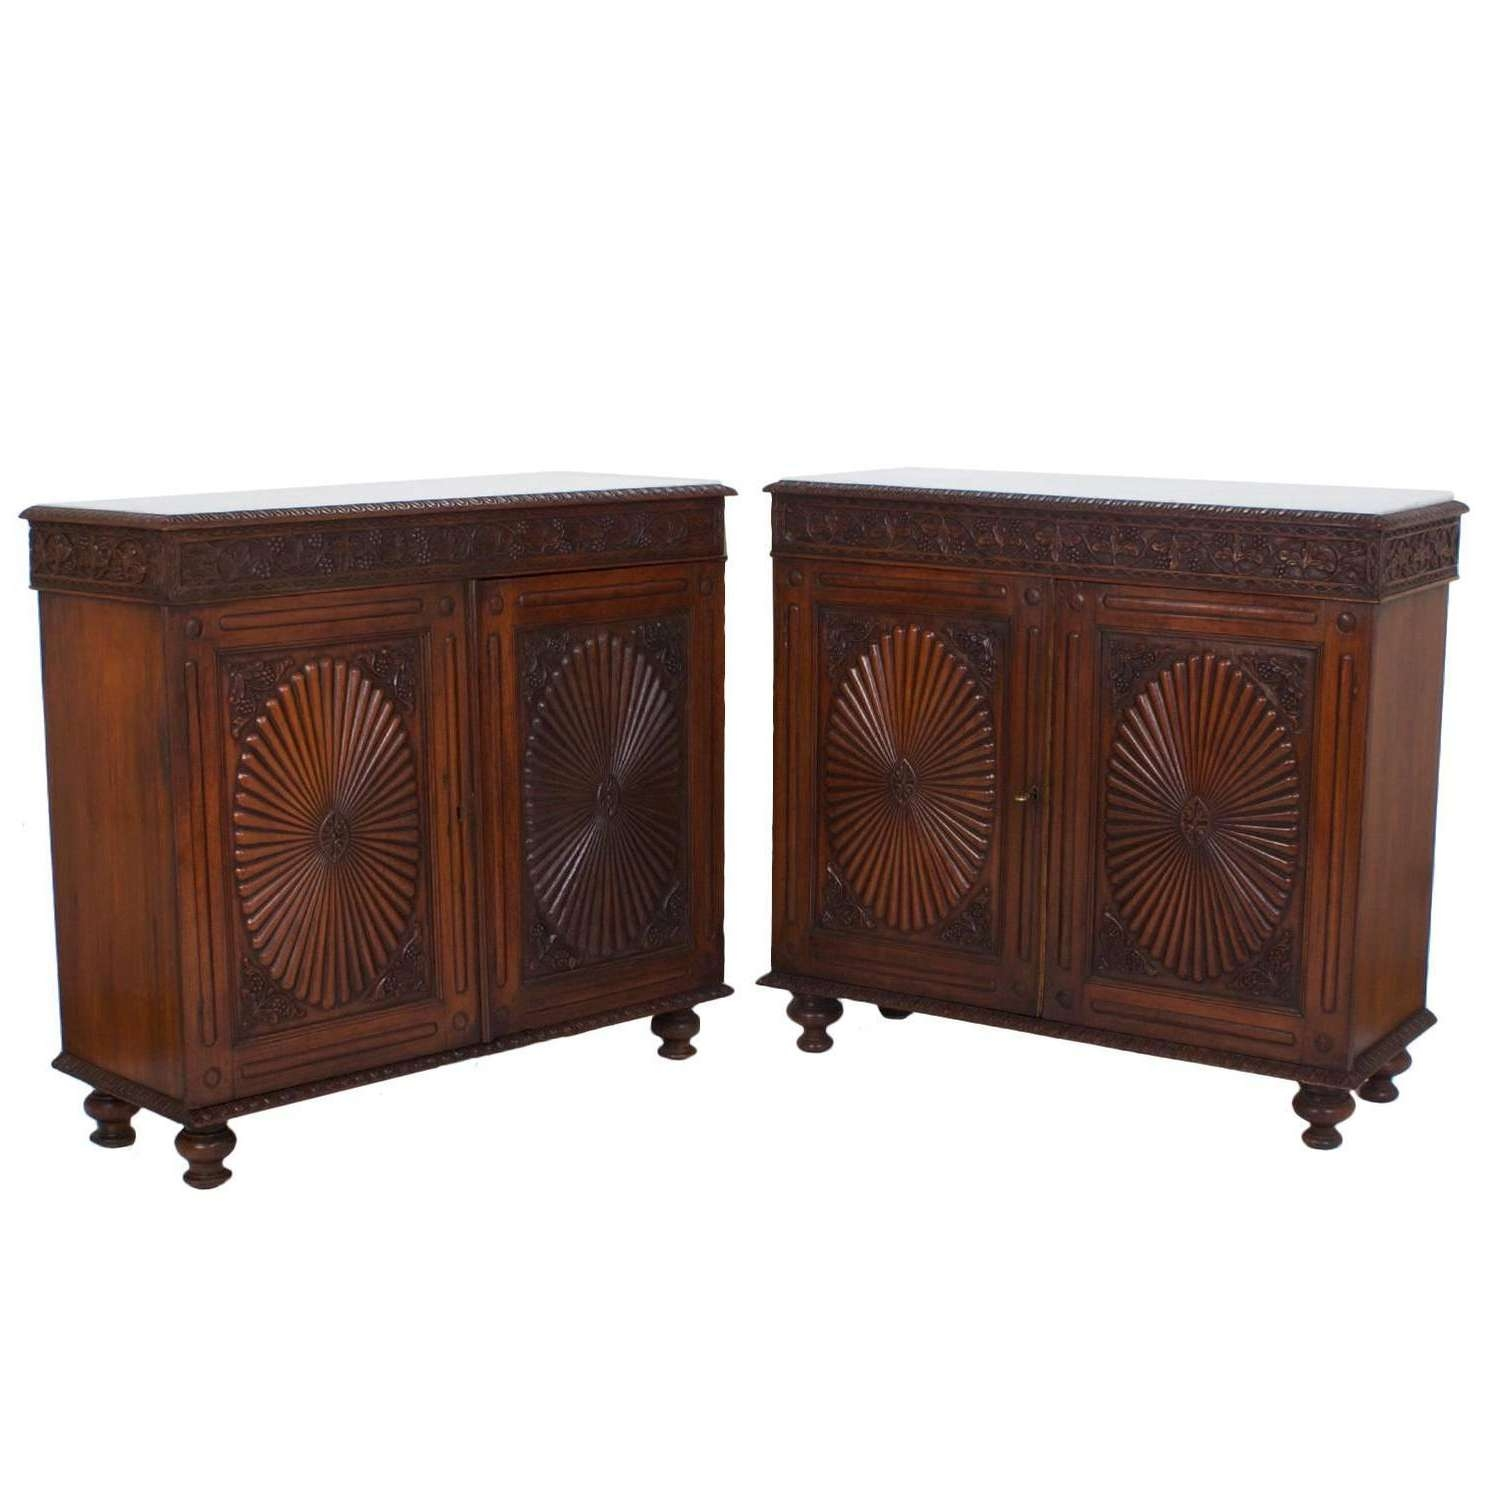 Pair Of Antique Anglo Indian Marble Top Sideboards Or Cabinets At Pertaining To Marble Top Sideboards (View 14 of 20)